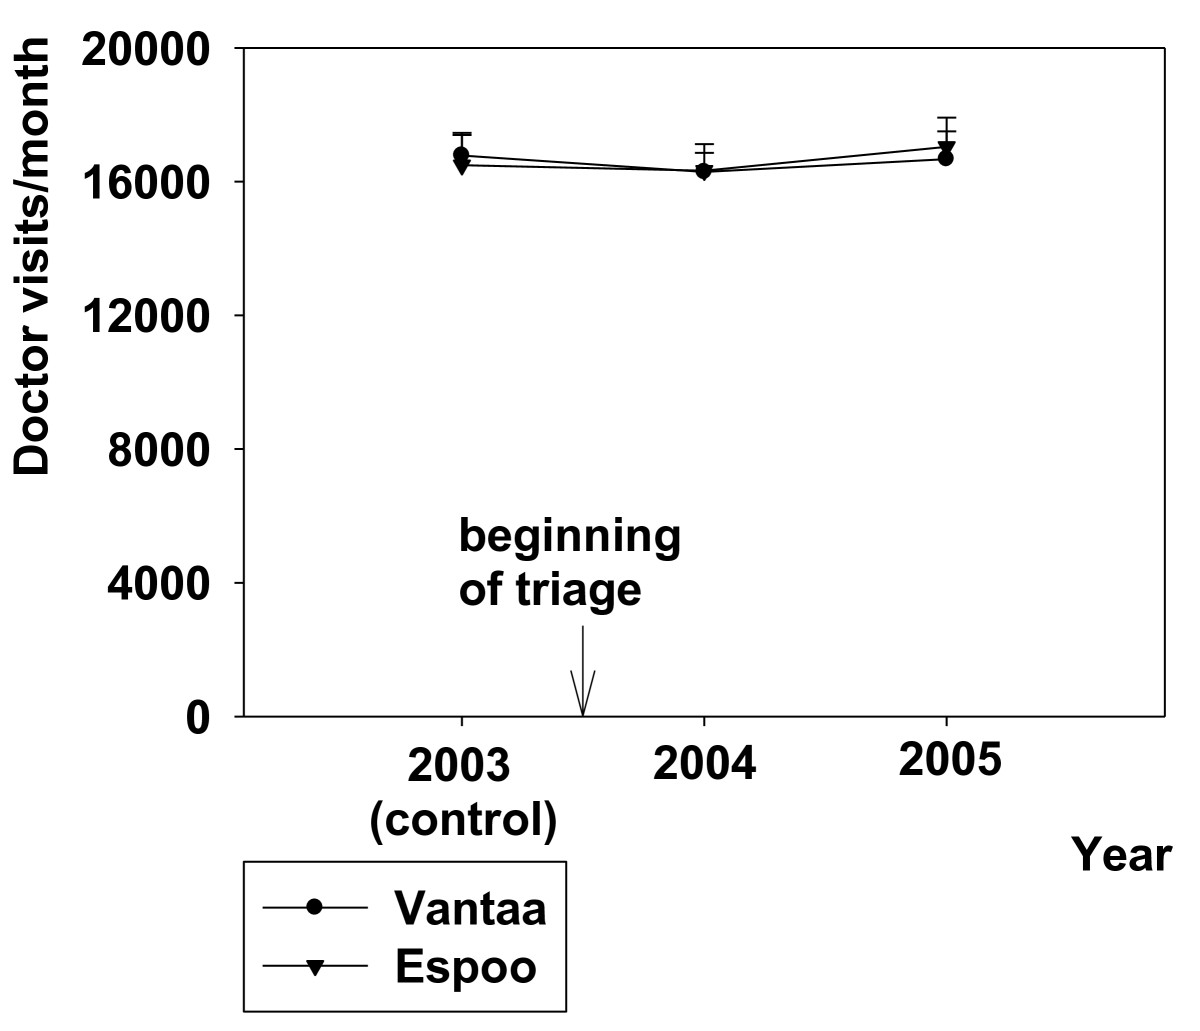 http://static-content.springer.com/image/art%3A10.1186%2F1471-227X-10-12/MediaObjects/12873_2009_Article_105_Fig2_HTML.jpg